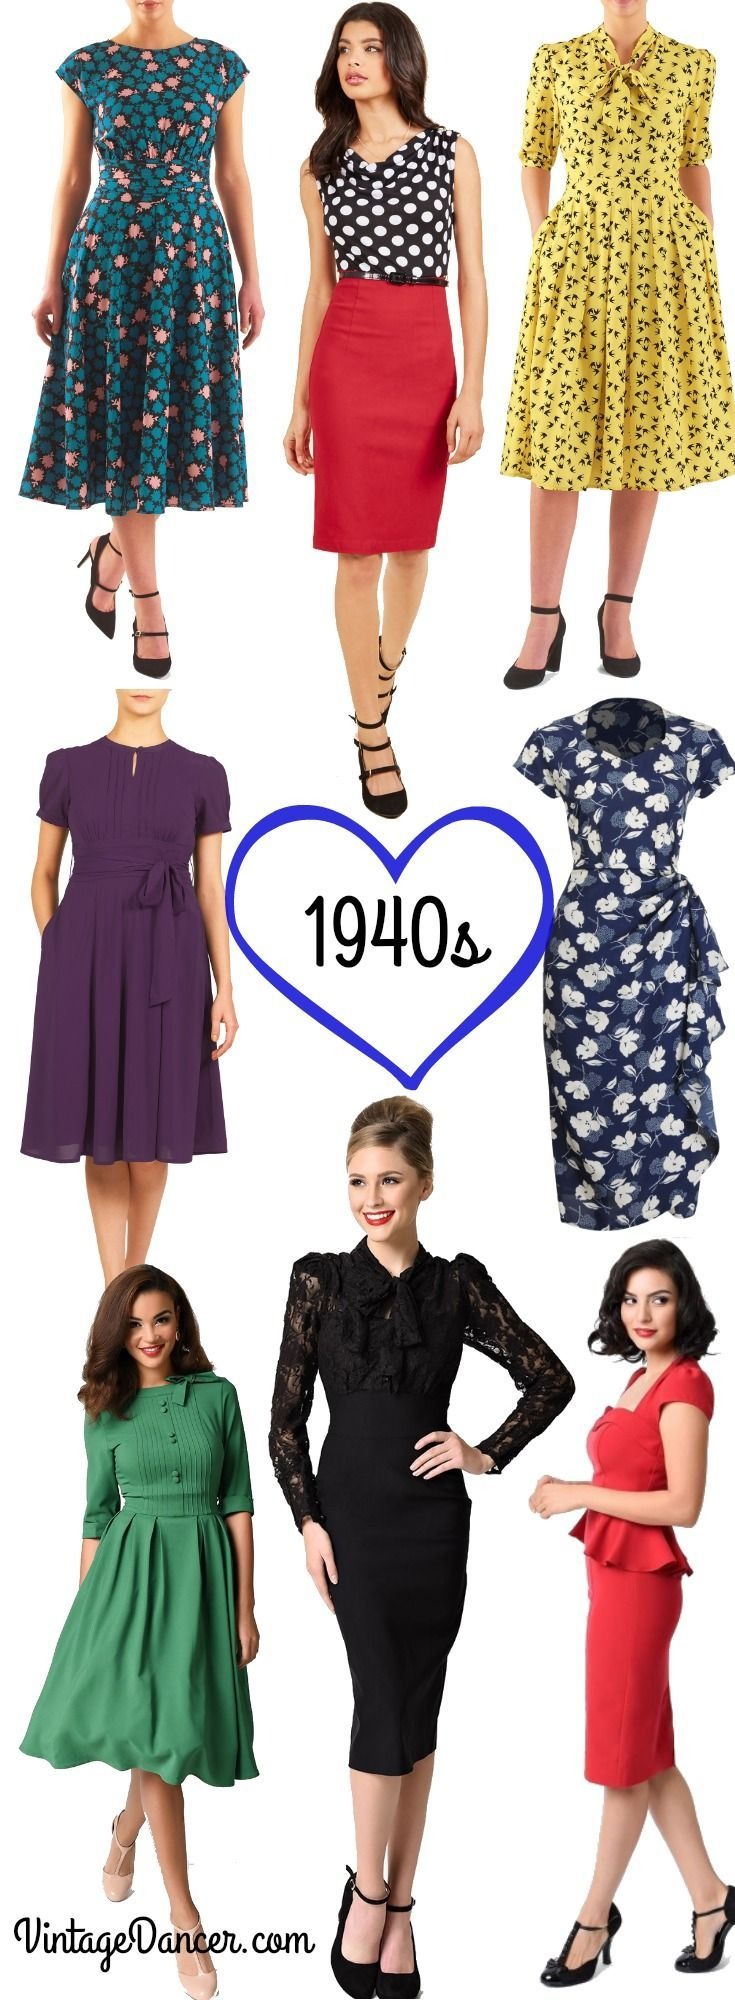 1940s dresses. Casual, vintage inspired swing dresses, dance dresses, pinup styles